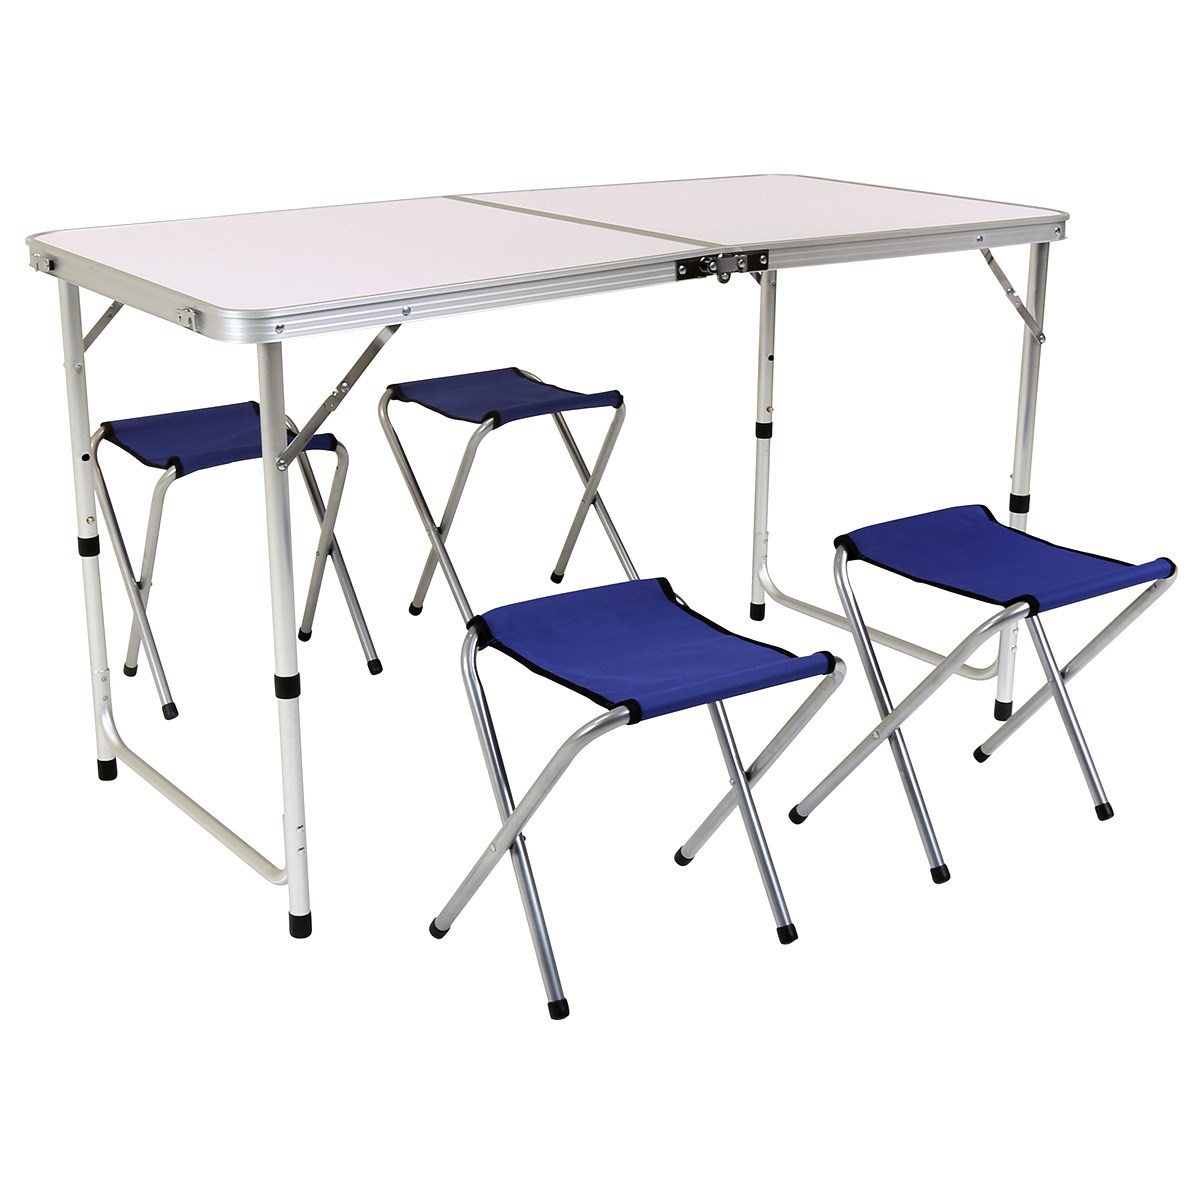 Folding Camping Table and Four Chairs  savvysurfcouk